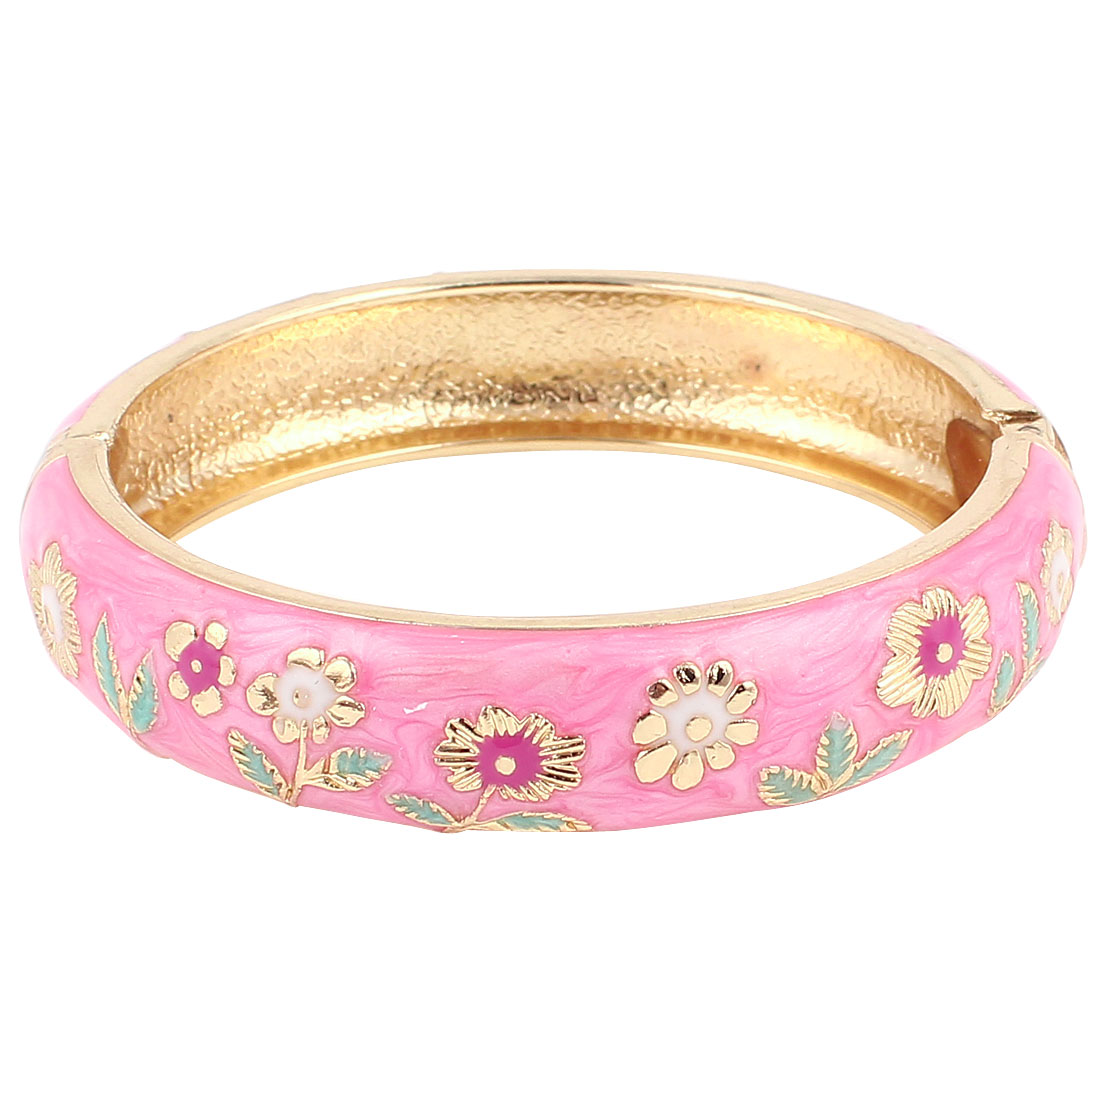 Lady 2.8-inch Dia Pink Hinged Metal Wrist Enamel Bracelet Bangle